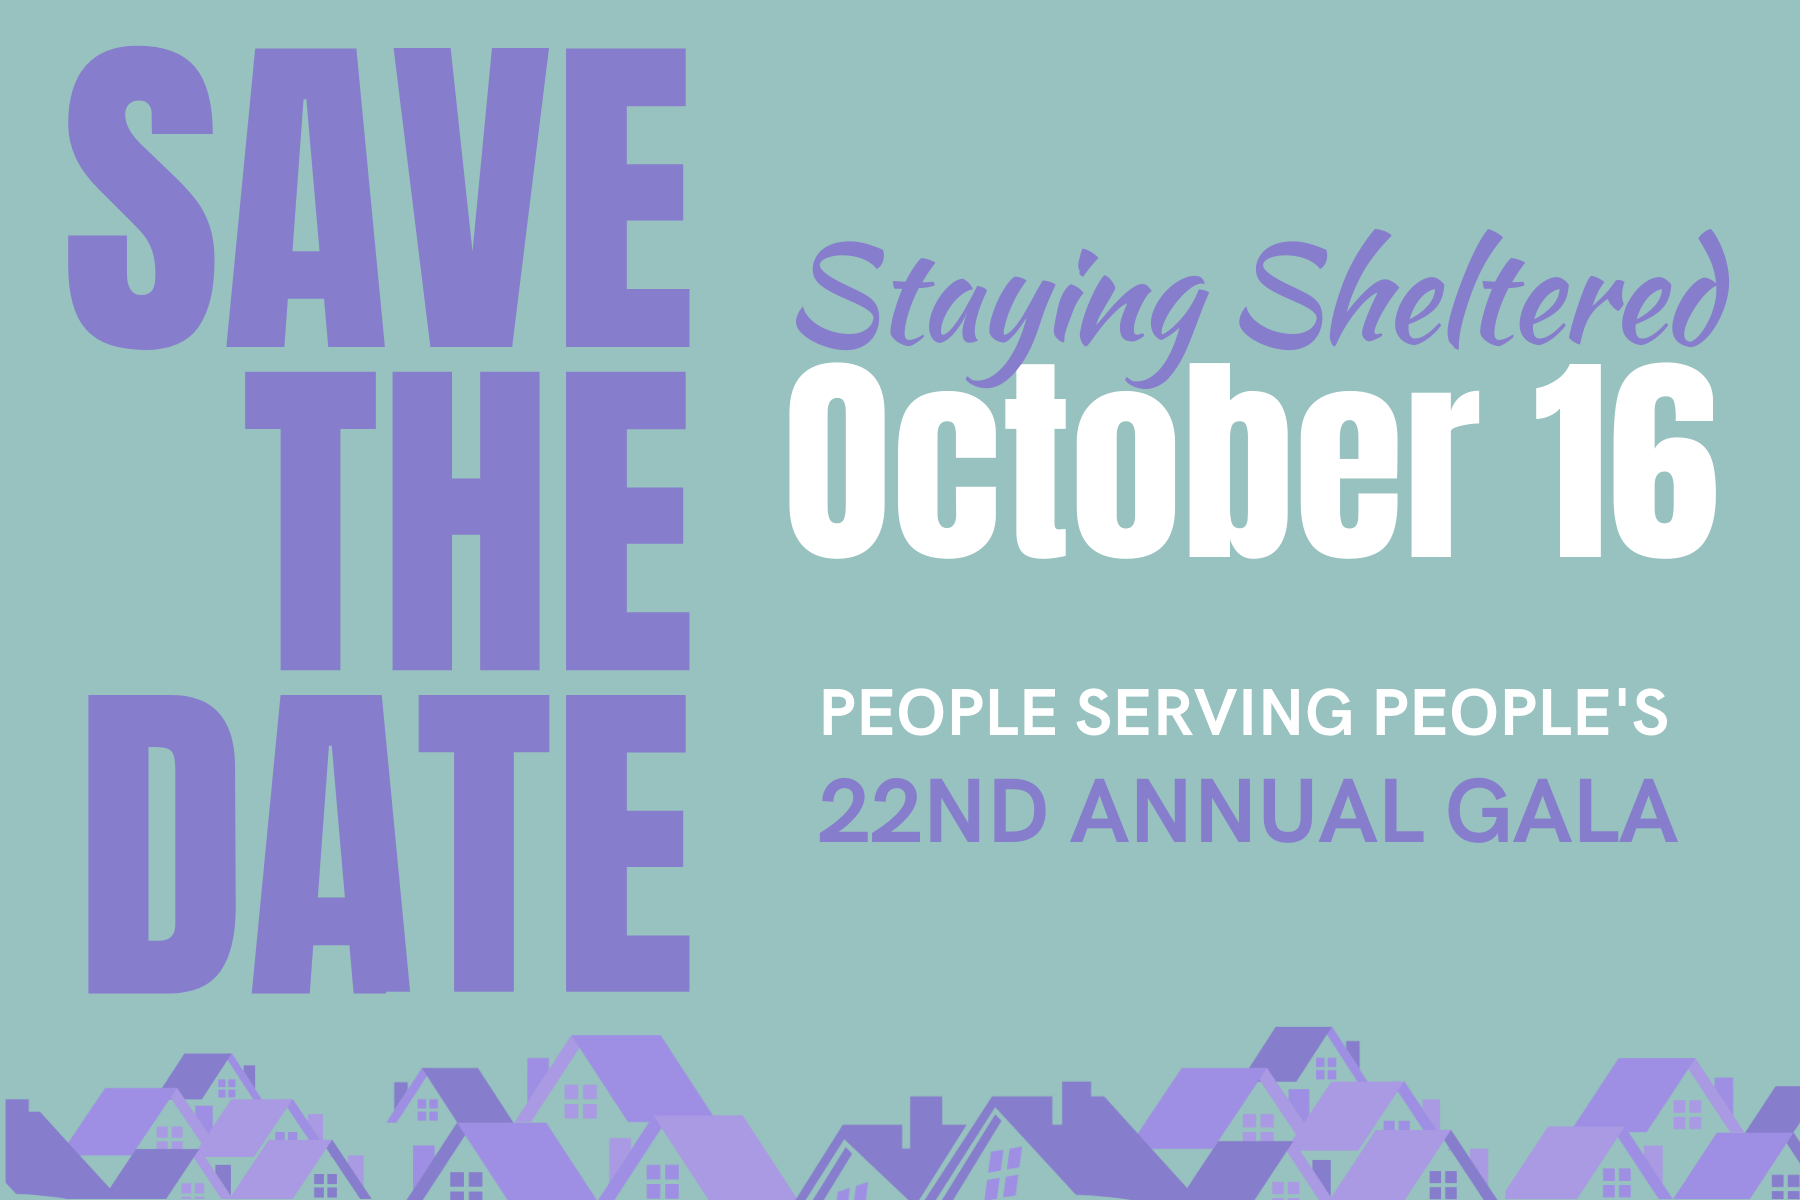 Art: SAVE THE DATE, October 16, Staying Sheltered, People Serving People's 22nd Annual Gala